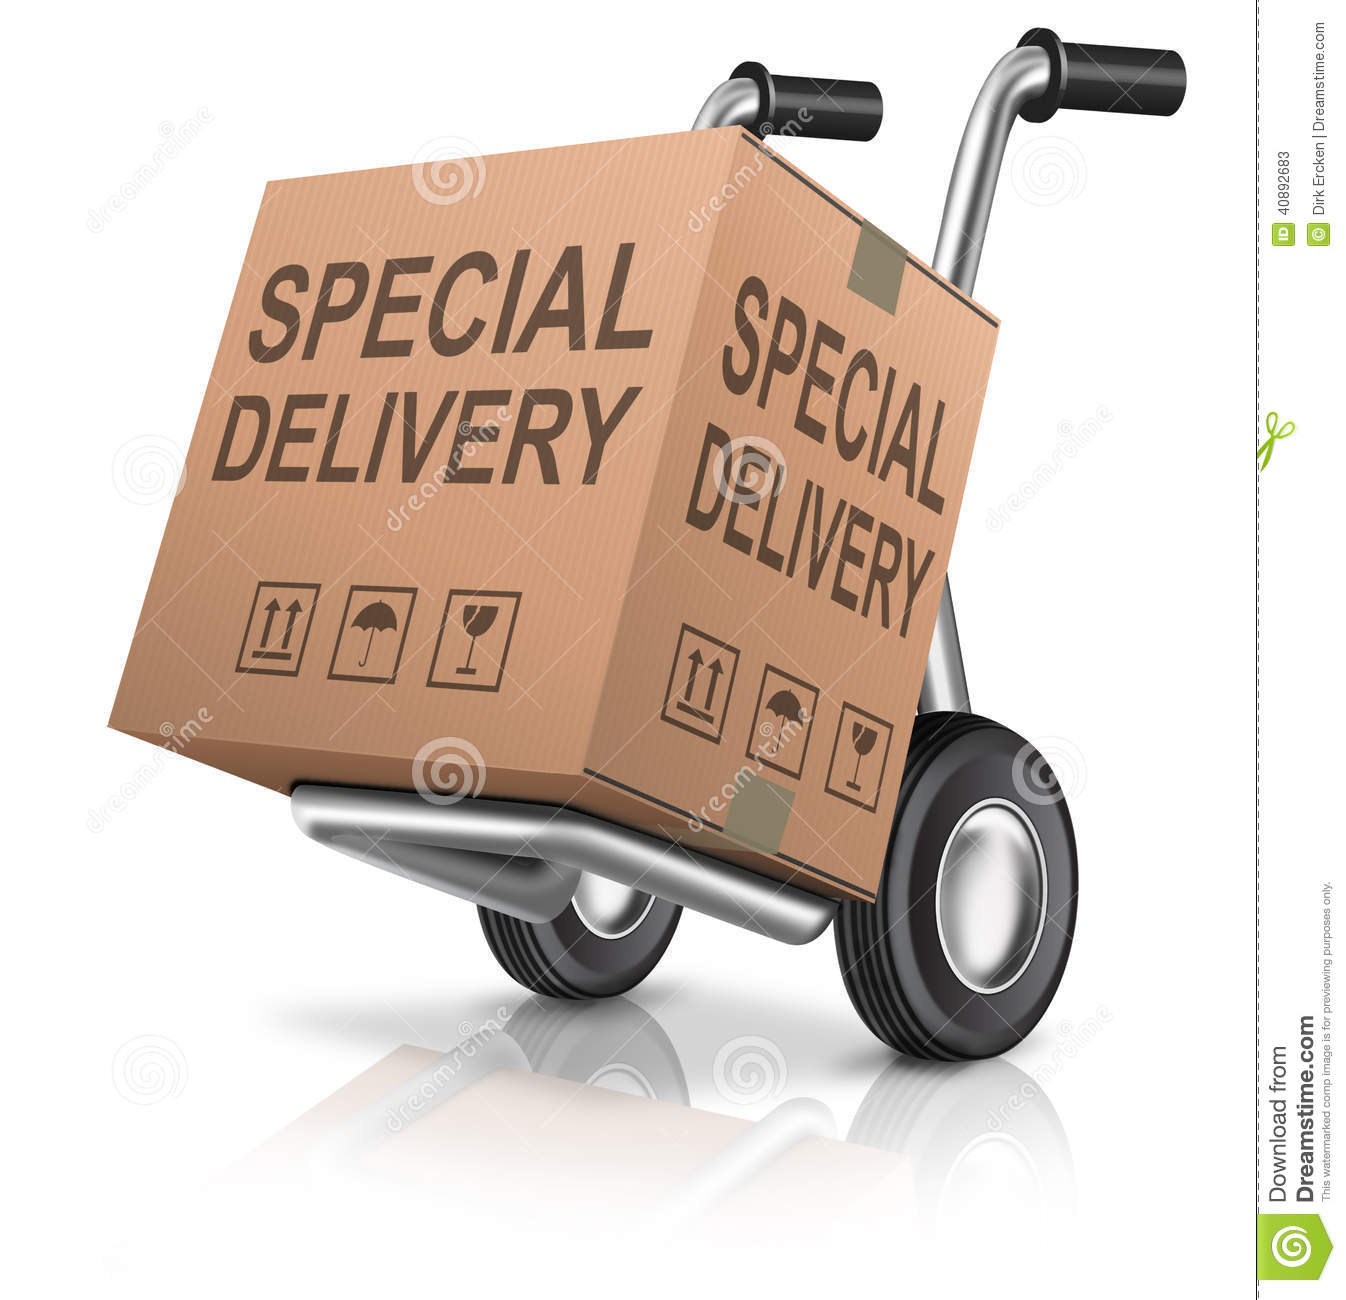 Shipping Delivery: Special Package Delivery Cardboard Box Stock Illustration